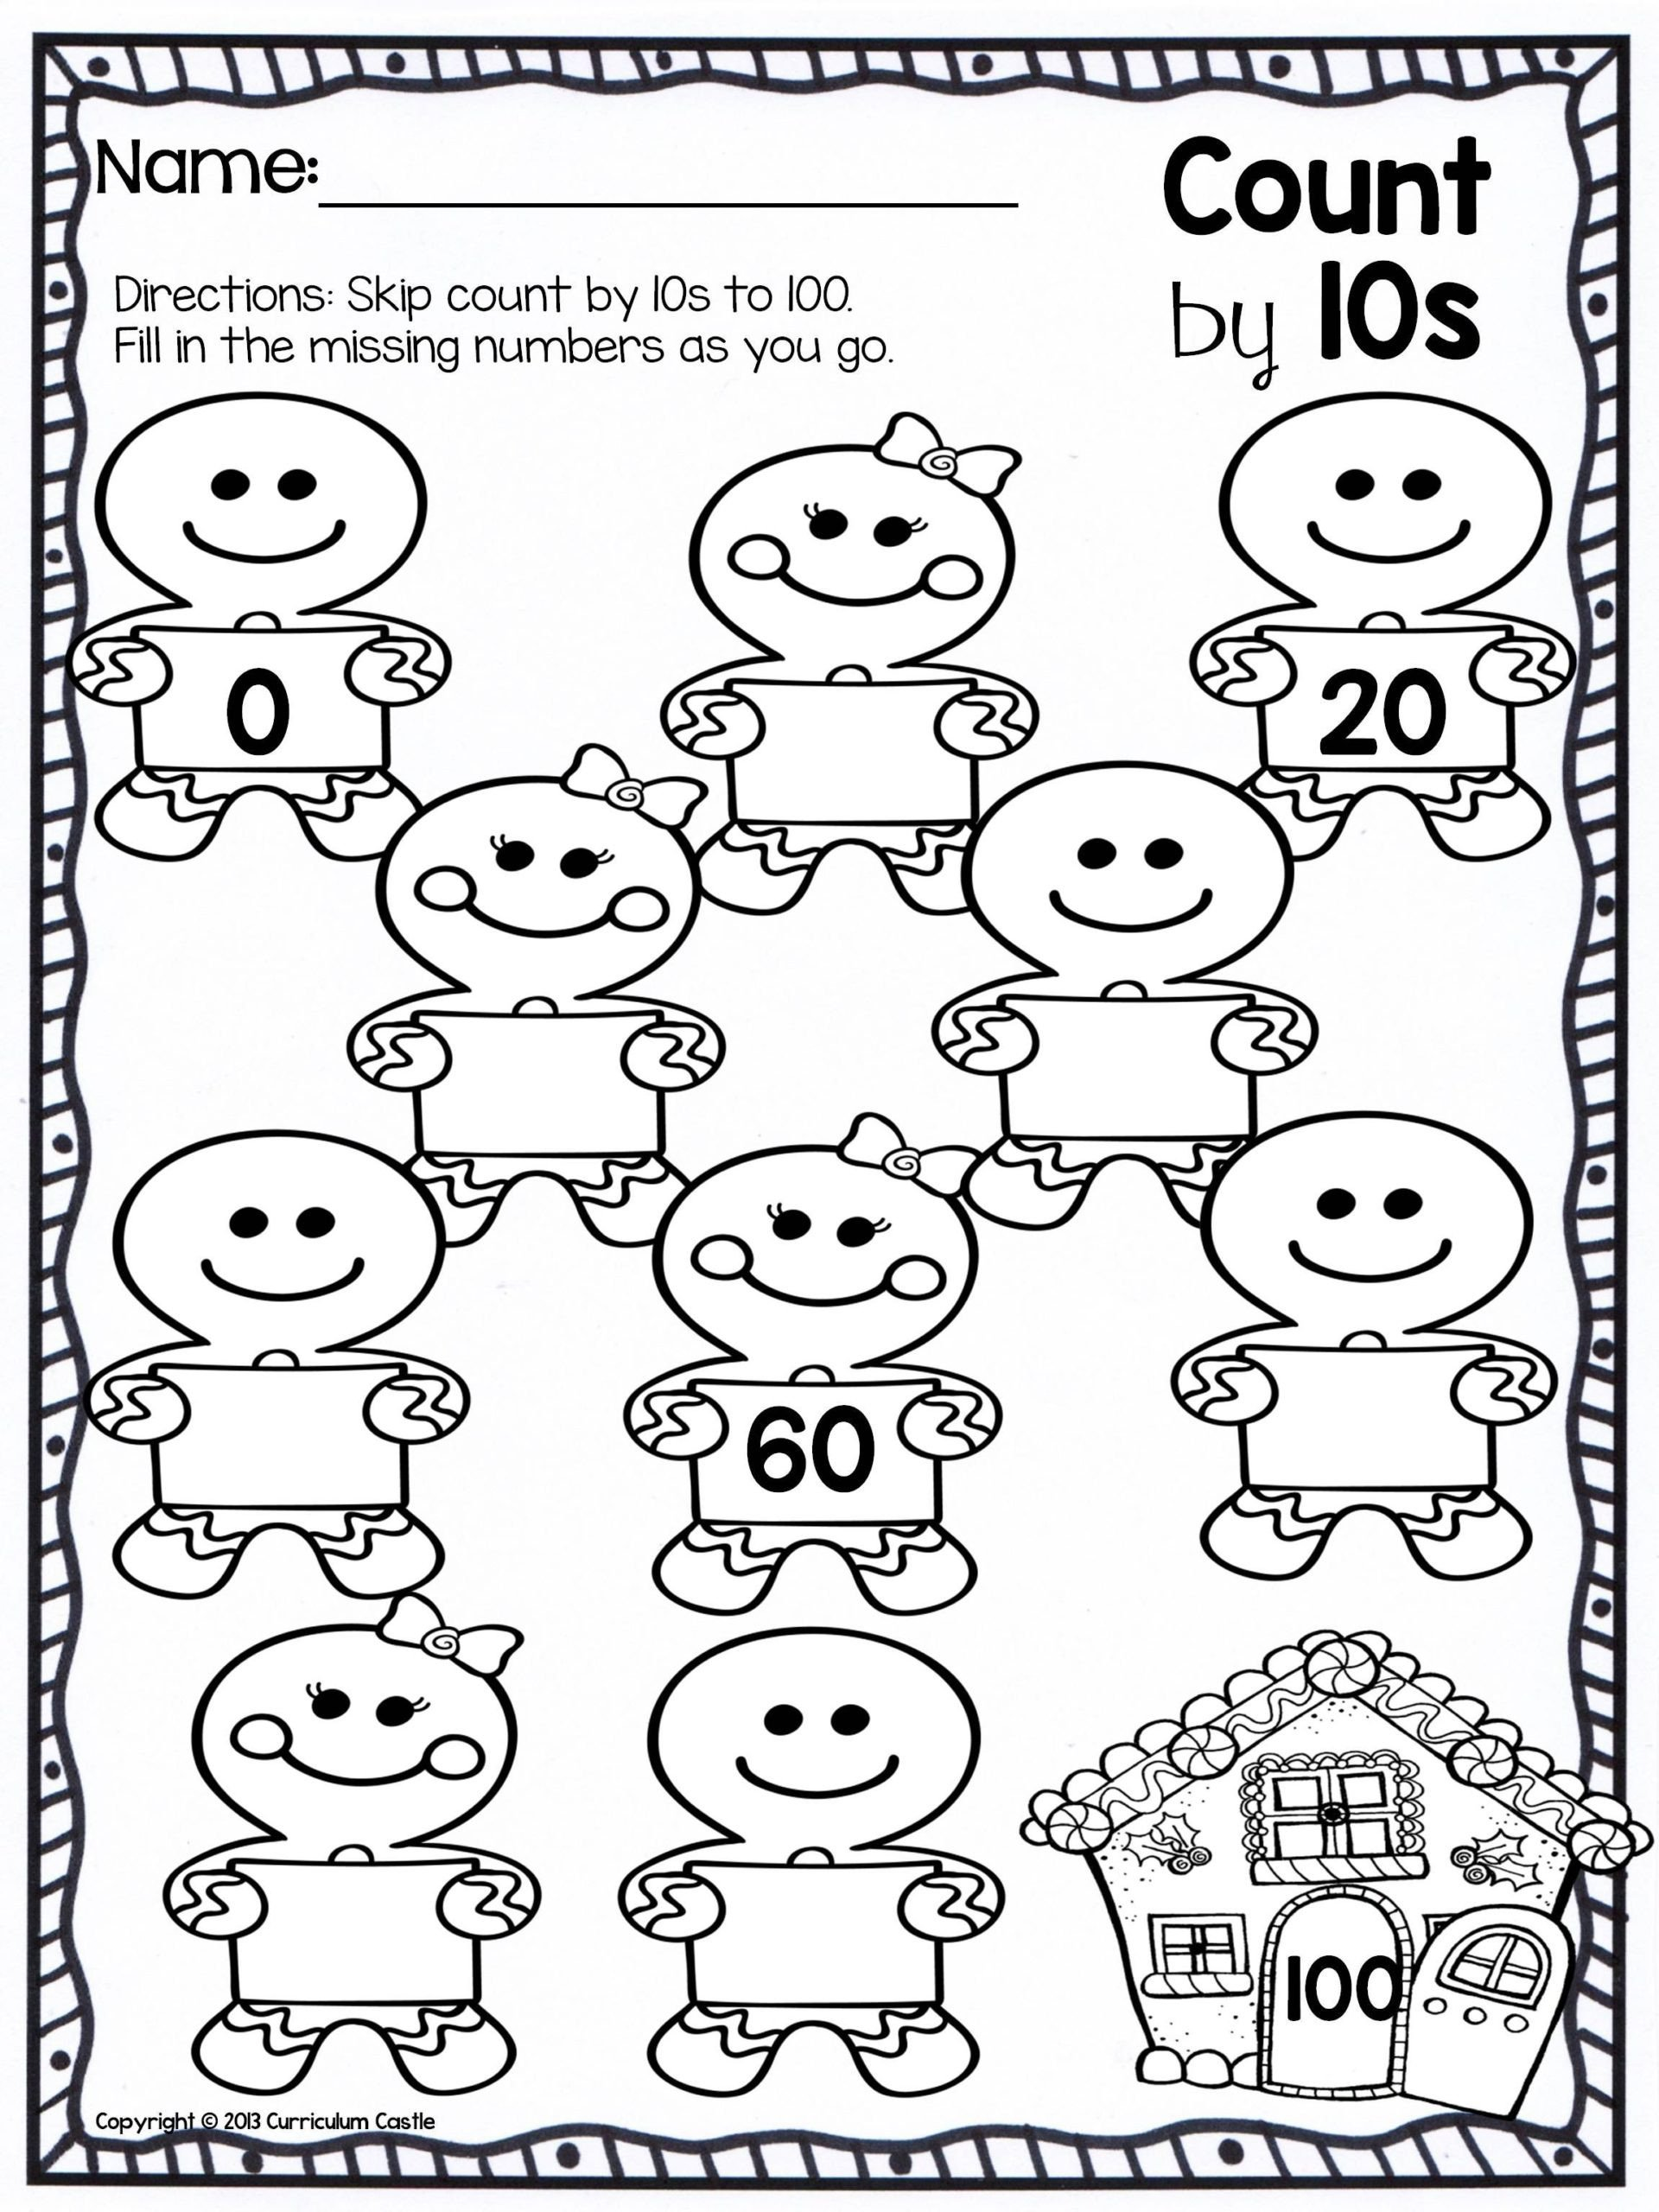 Alliteration Worksheets for Middle School Putation Math Problems Page 2 Character Education